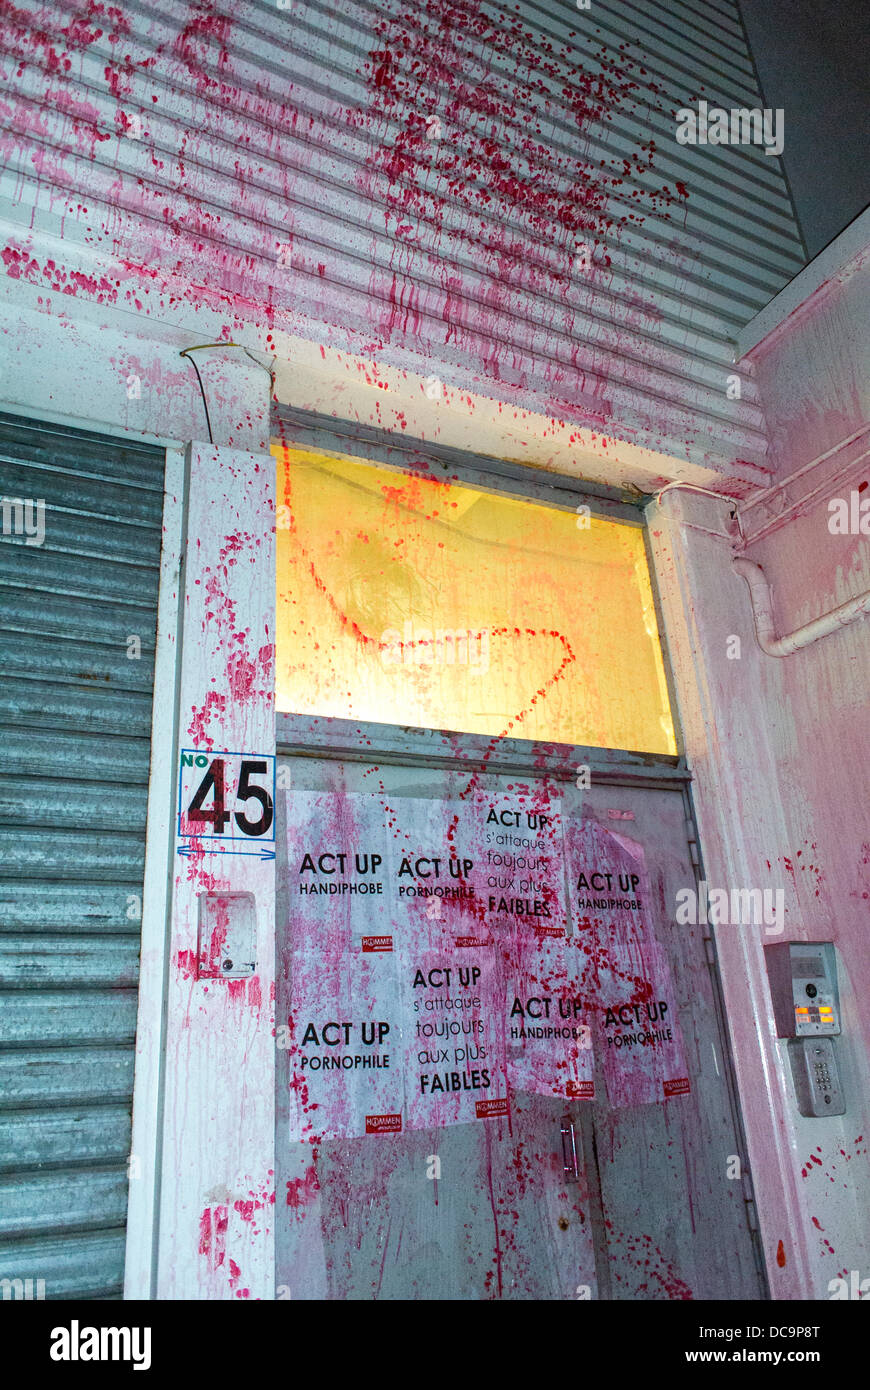 Paris, France, Homophobic Attack Against French AIDS N.G.O., Act Up Paris, Signs, Splashed Liquid. LGBT Violence - Stock Image